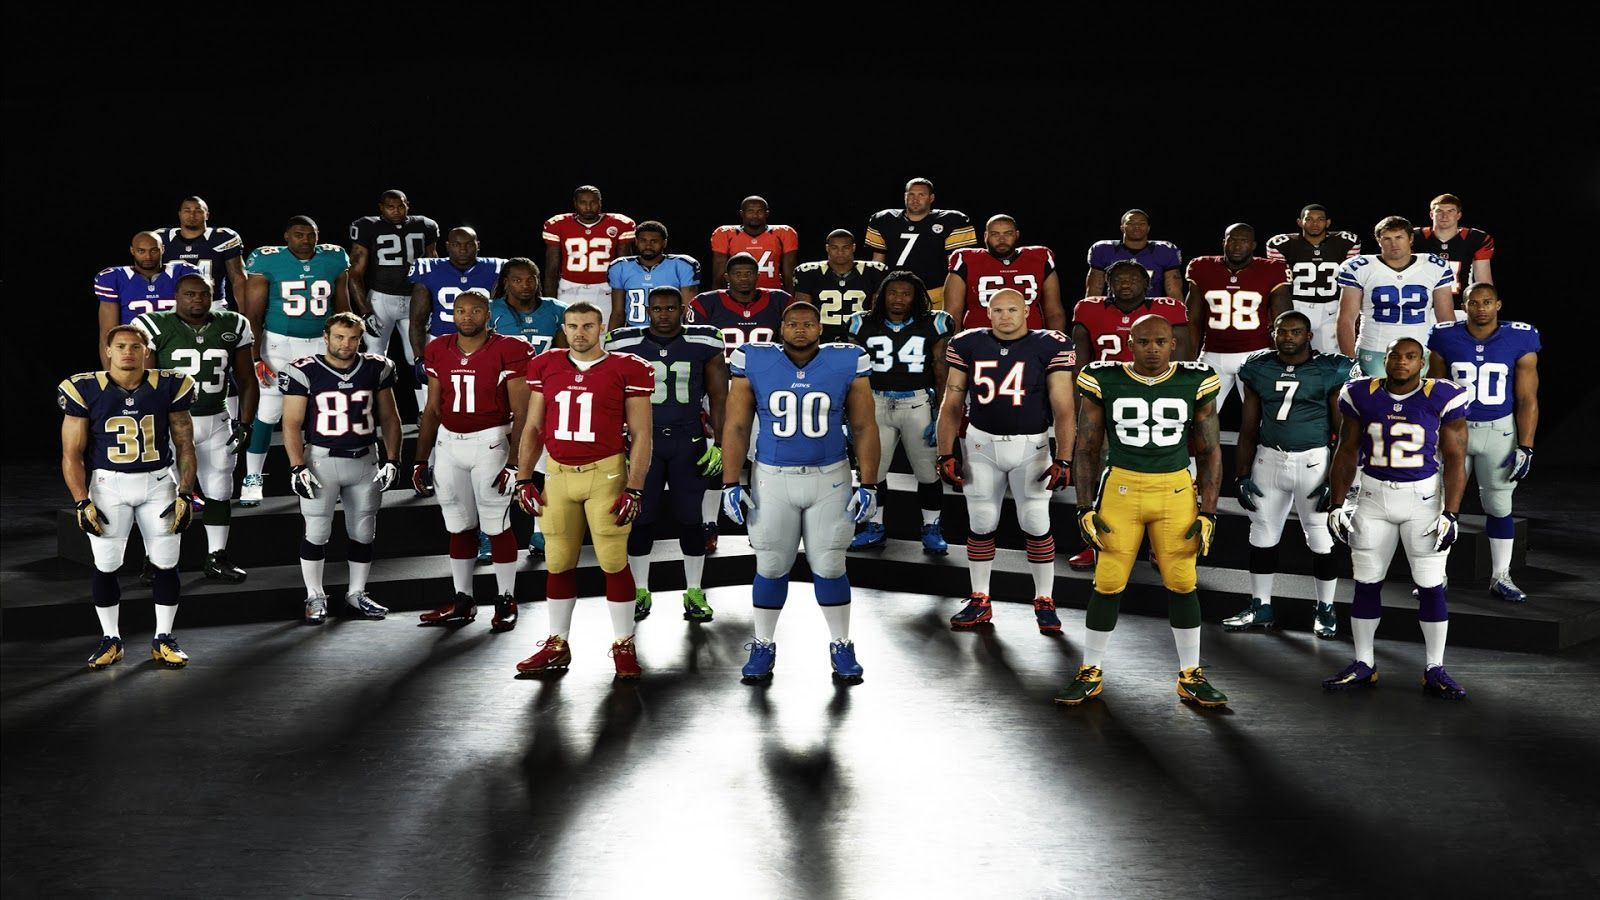 Football Wallpapers NFL, Football NFL Wallpapers For Free Download ...